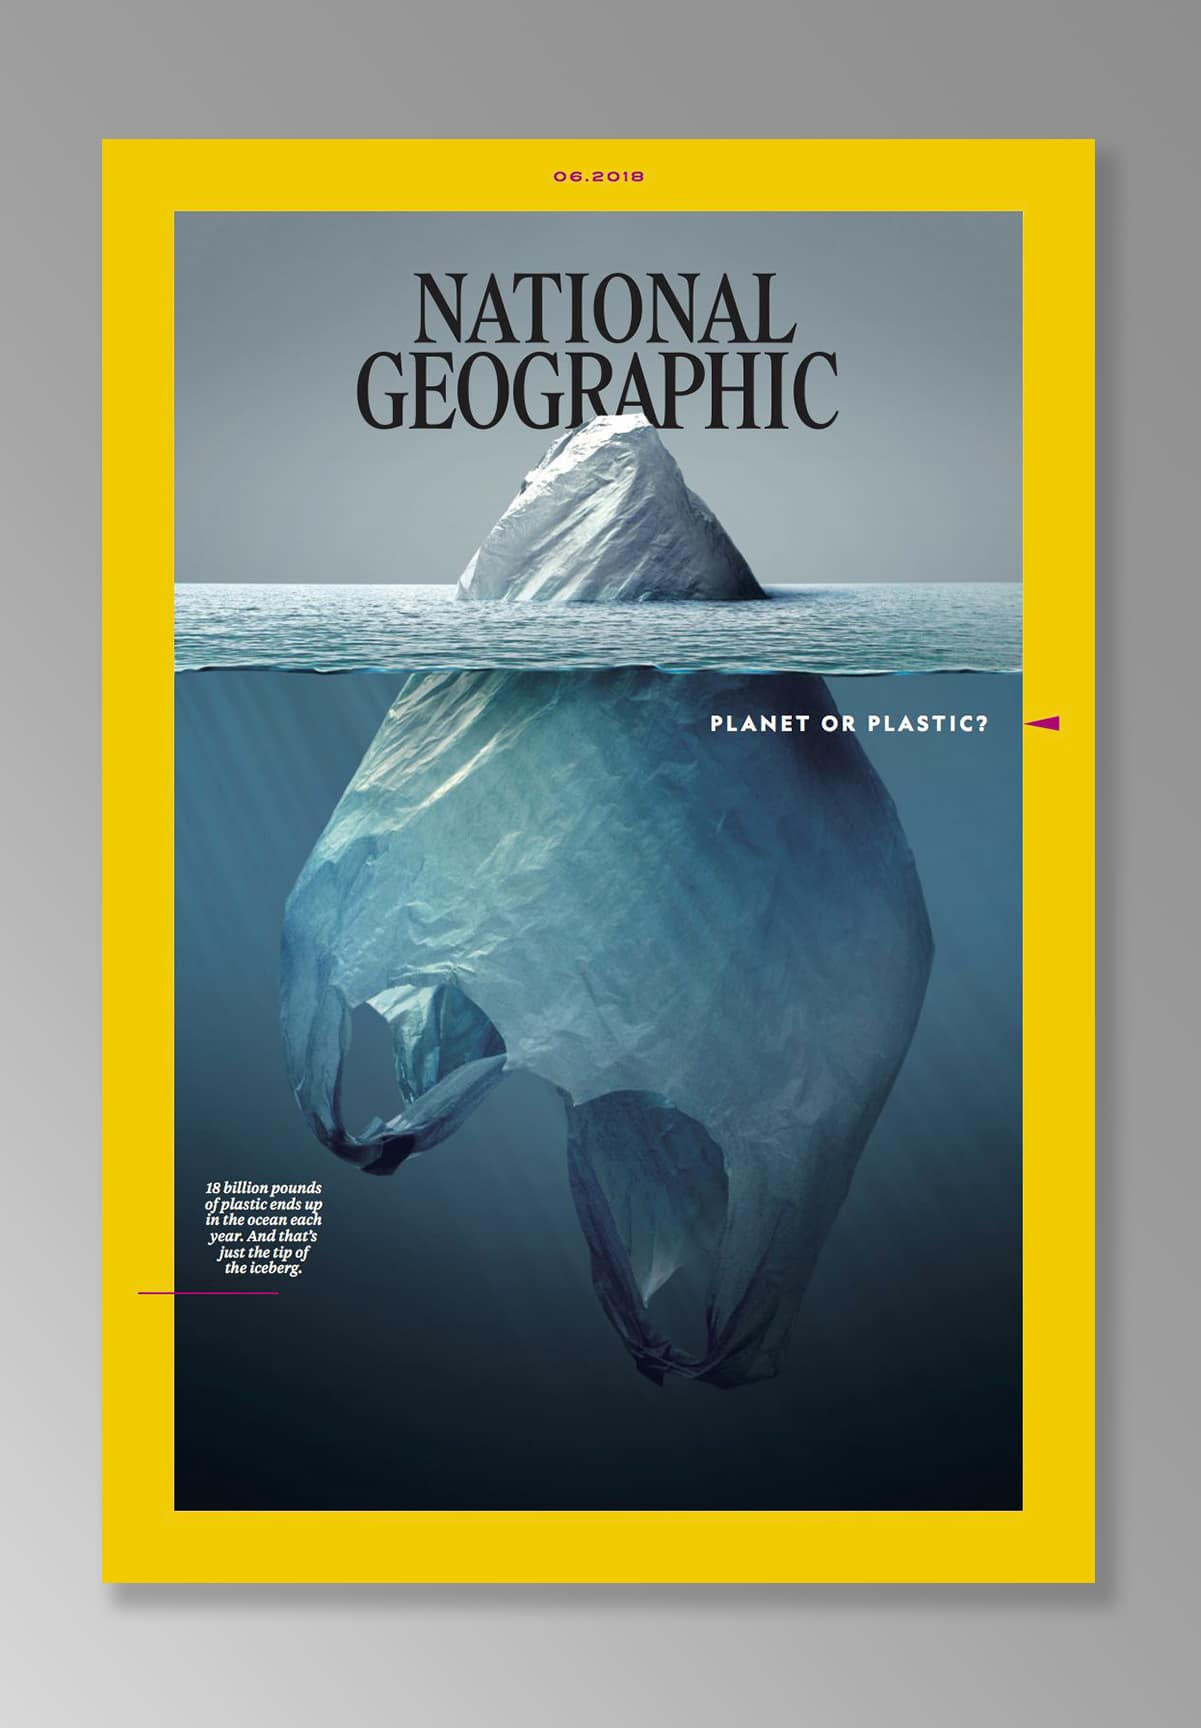 As the world continues to drown in single-use plastic, the iconic magazine has launched a multi-year initiative called Planet or Plastic? The newly unveiled June 2018 cover illustration by Jorge Gamboa